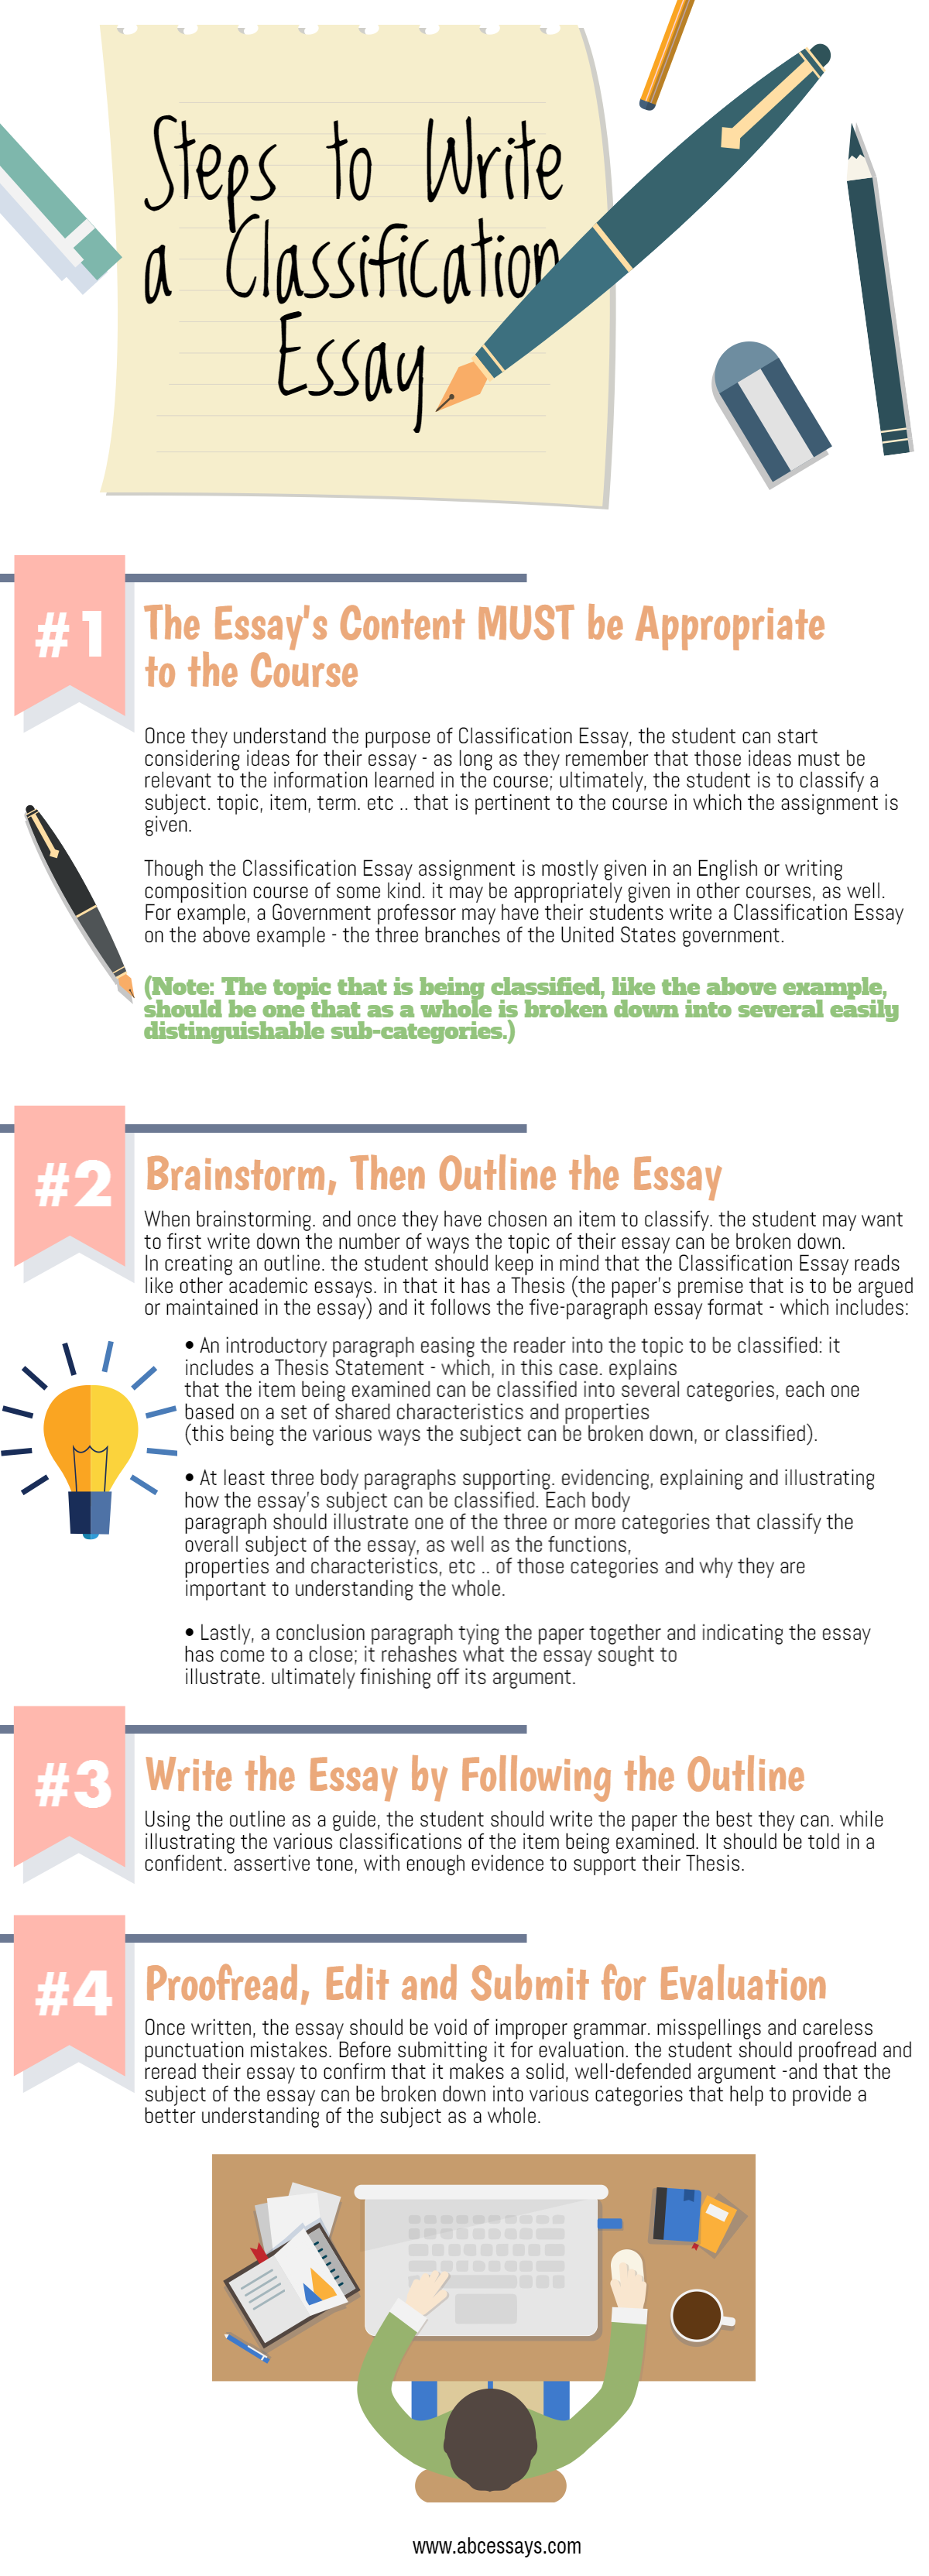 essay proof proof my essay uk essays proofreading editing  how to write classification essay division essay examples division essay example classification and division essay classification